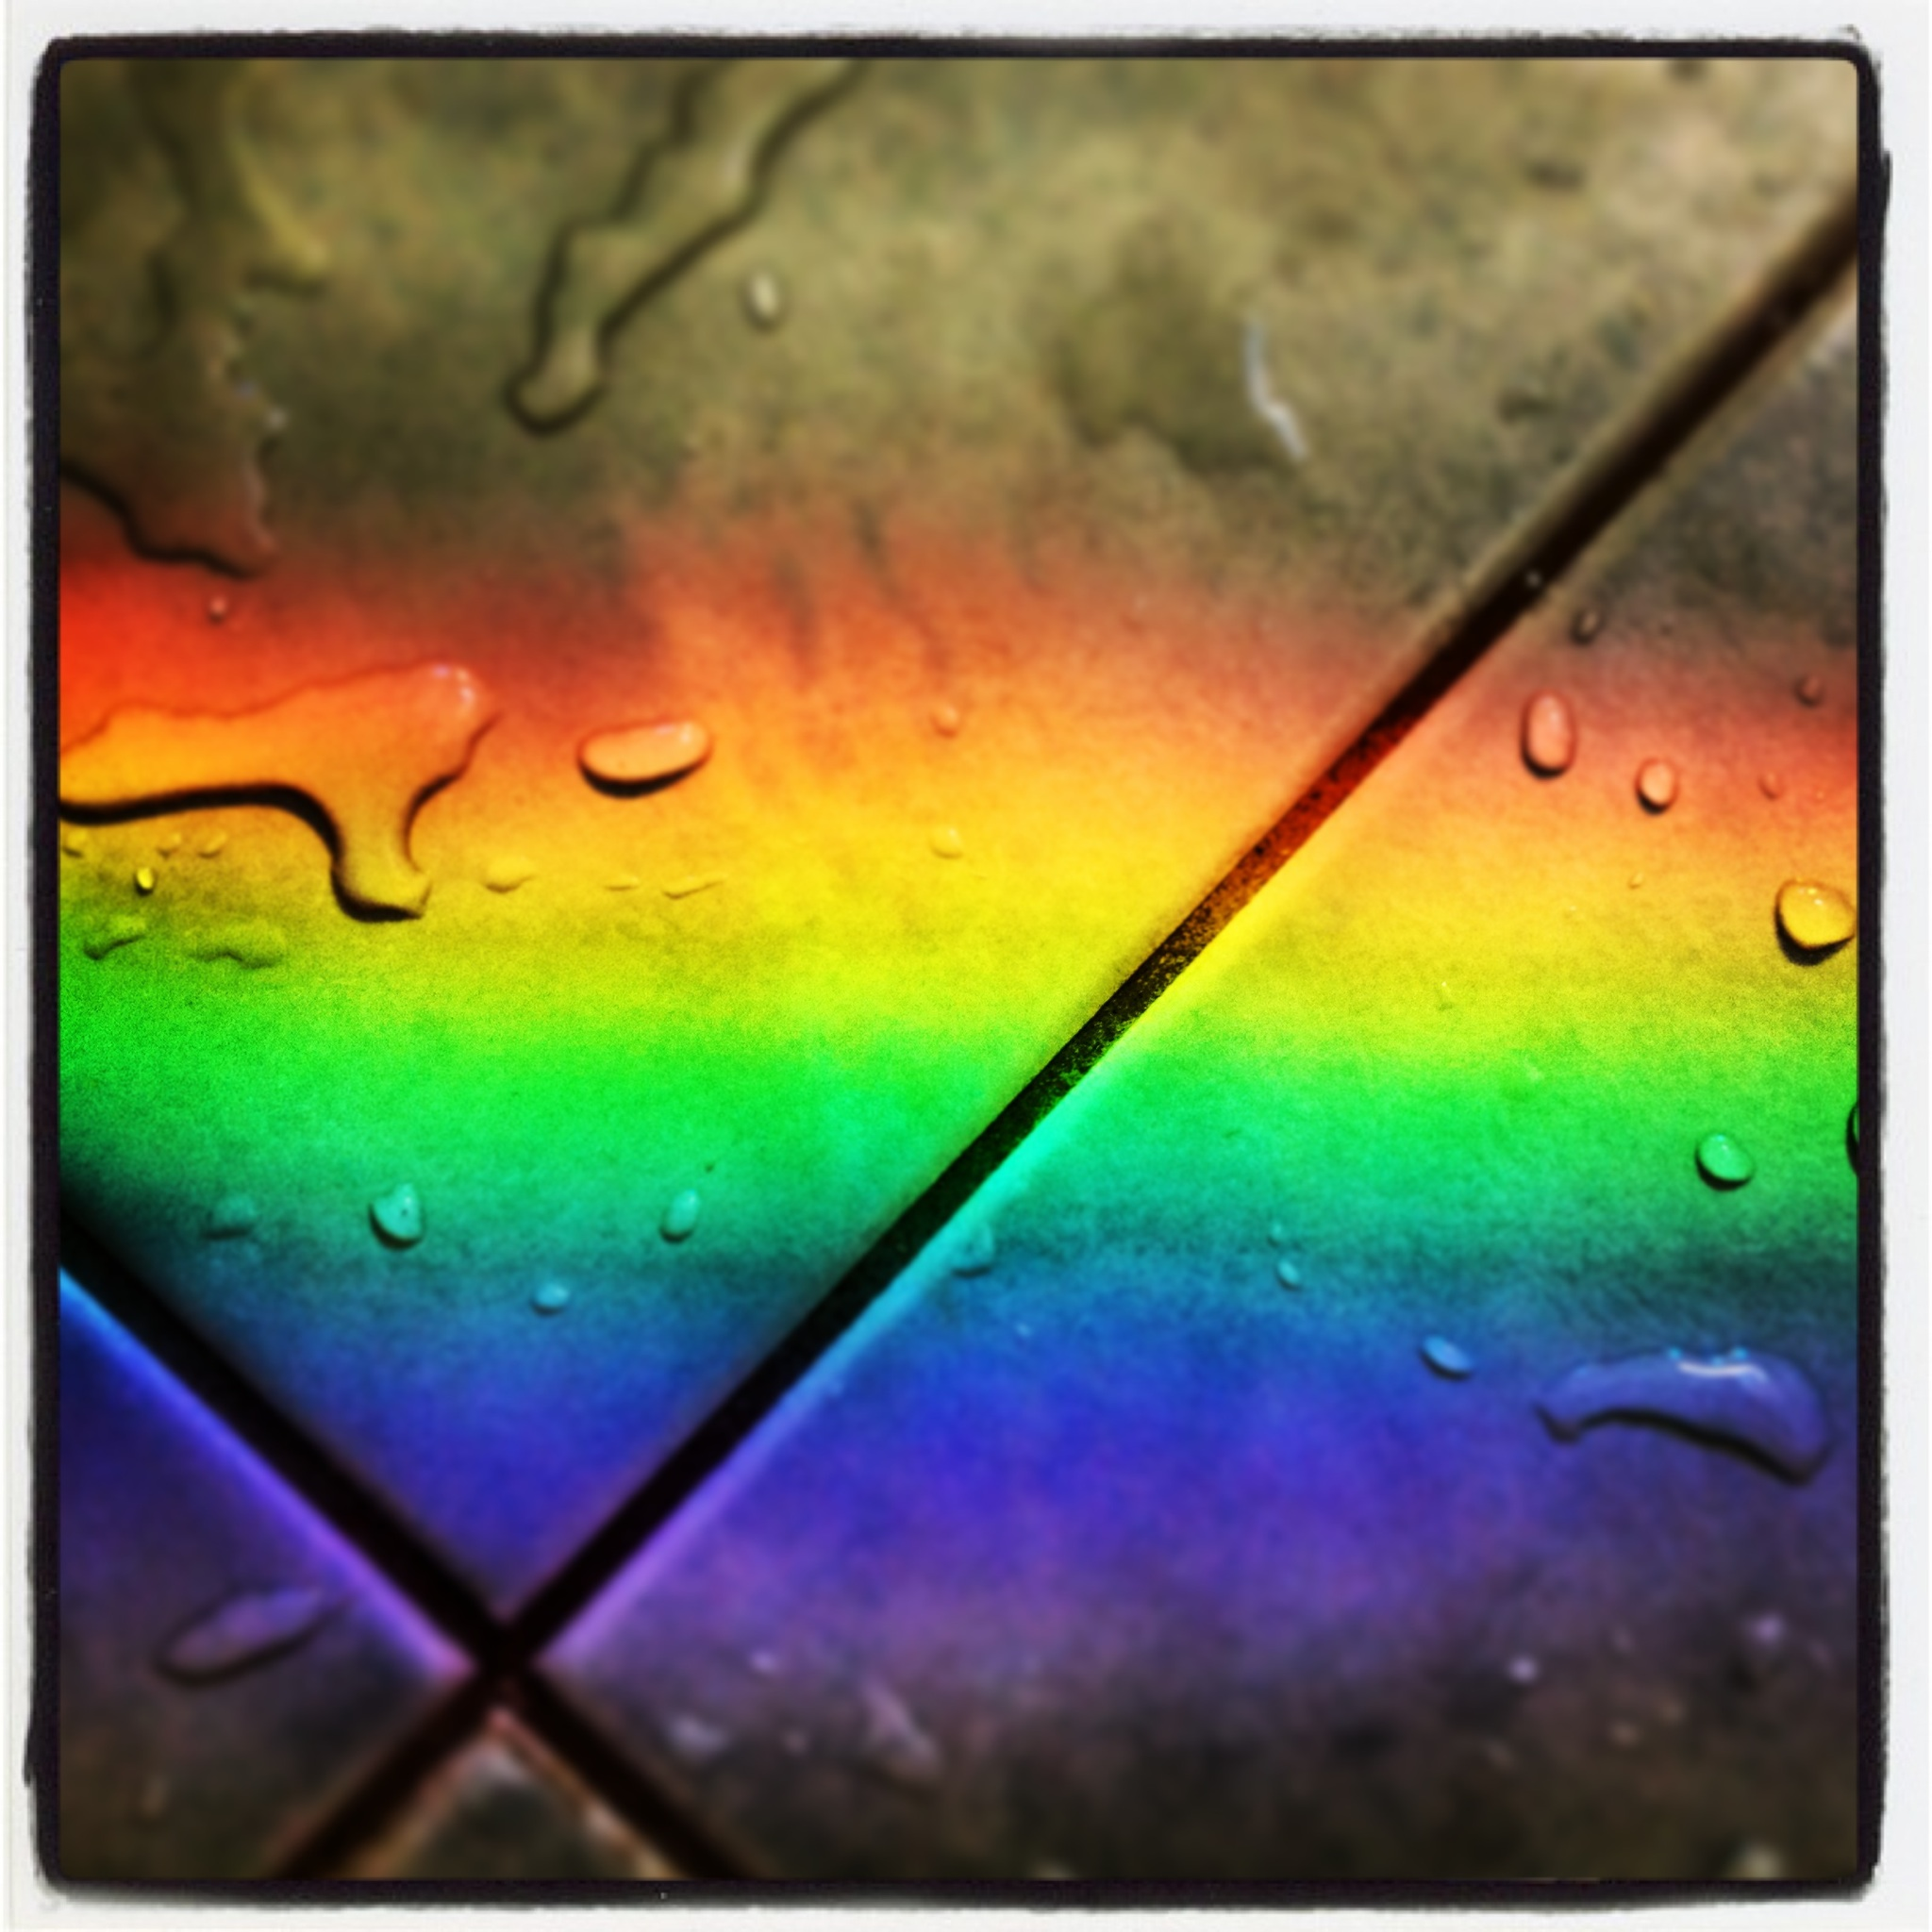 Rainbow over wet tiles